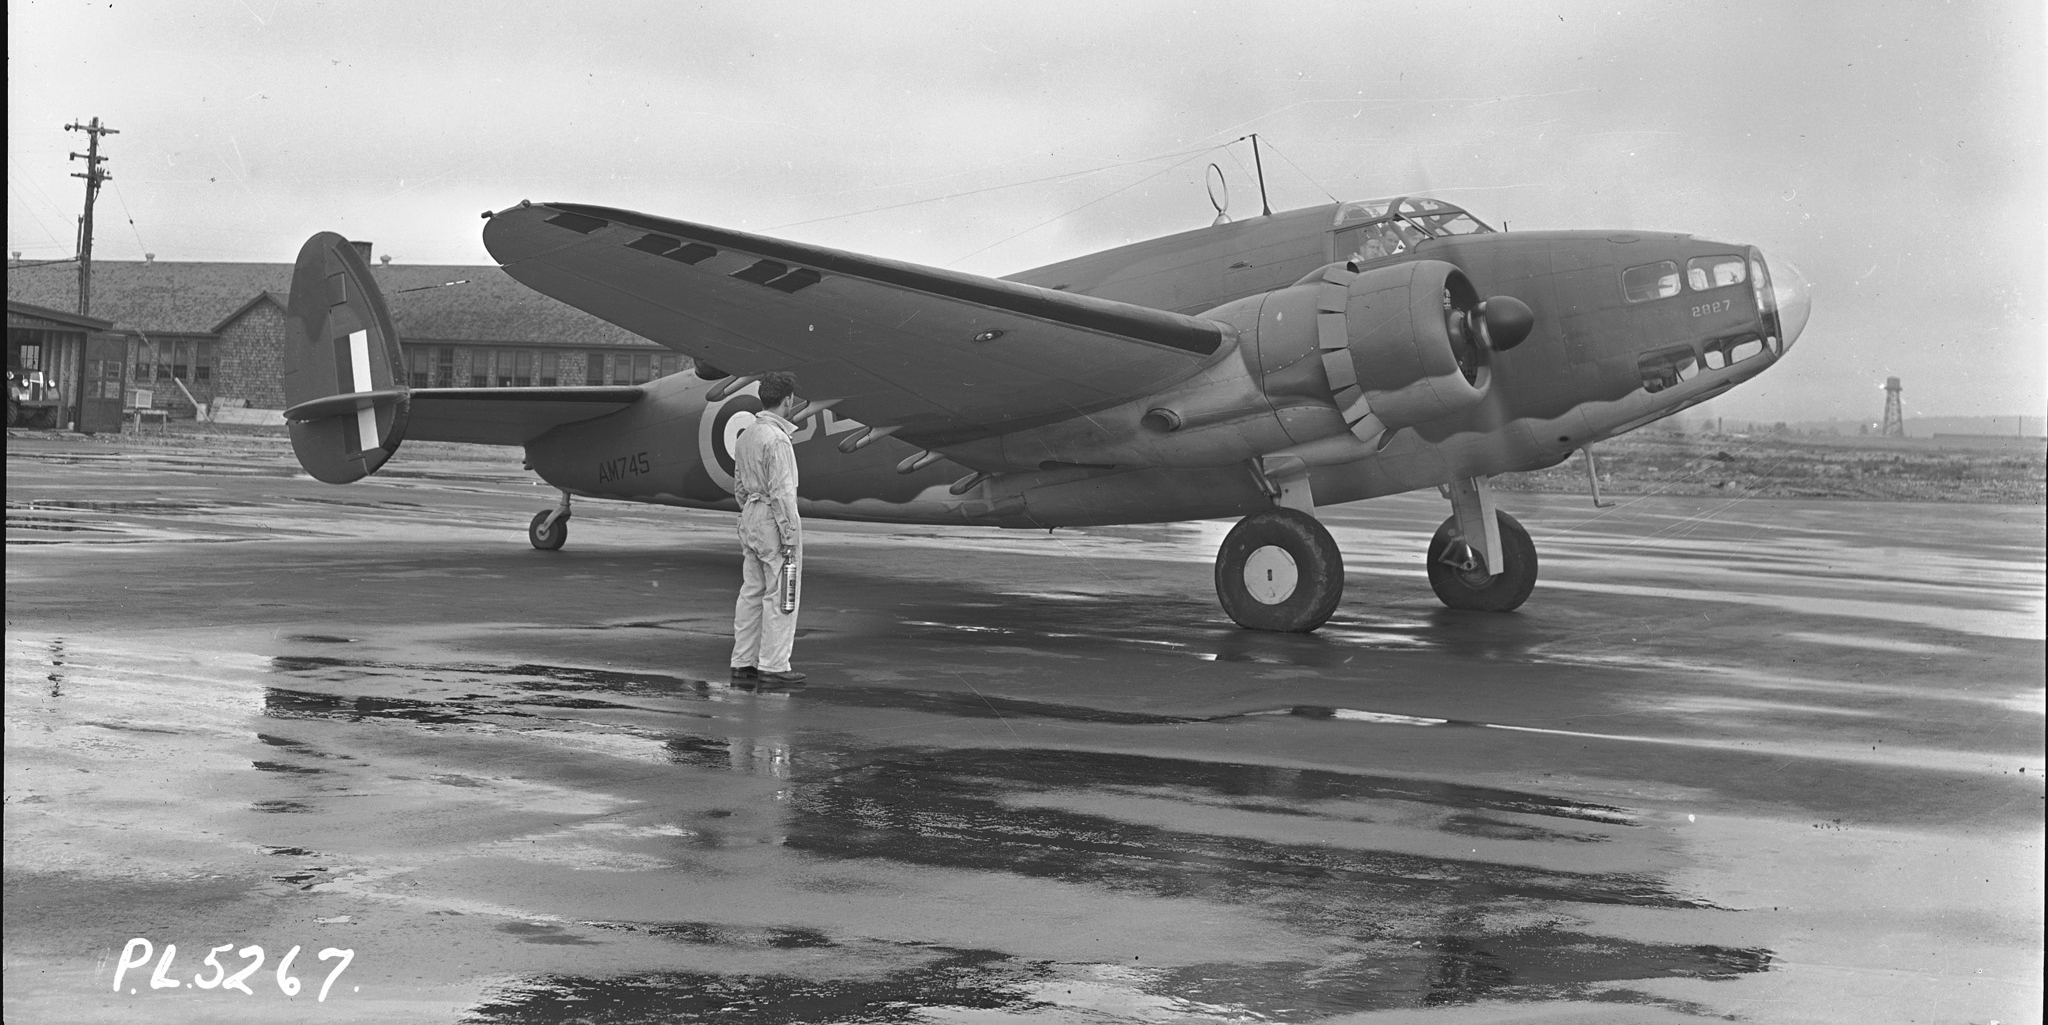 An old black and white photo of a large propeller-drive aircraft.